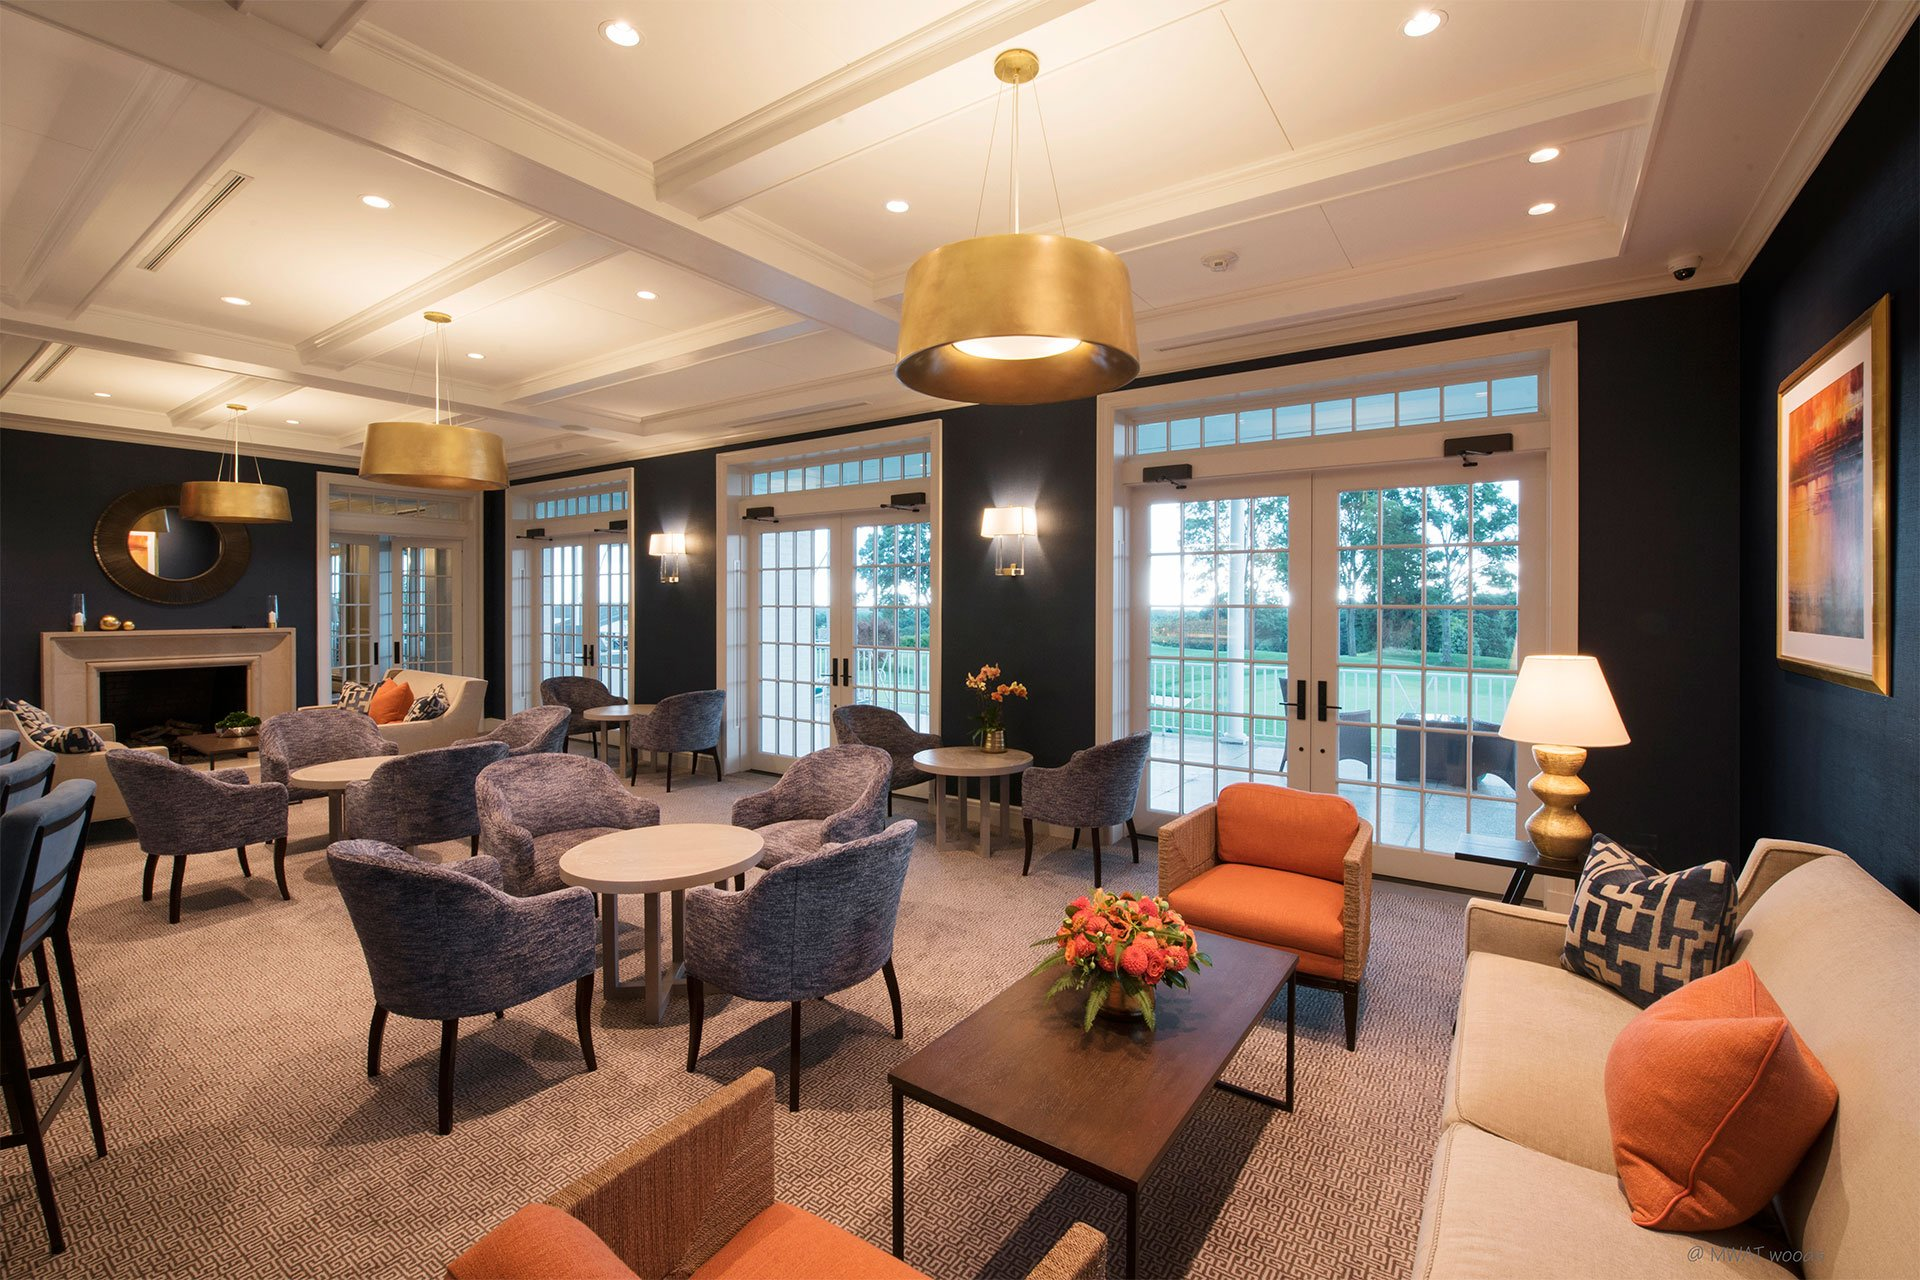 murphy-brothers-contracting-commercial-greewich-country-club-elmers-lounge-02 (2)